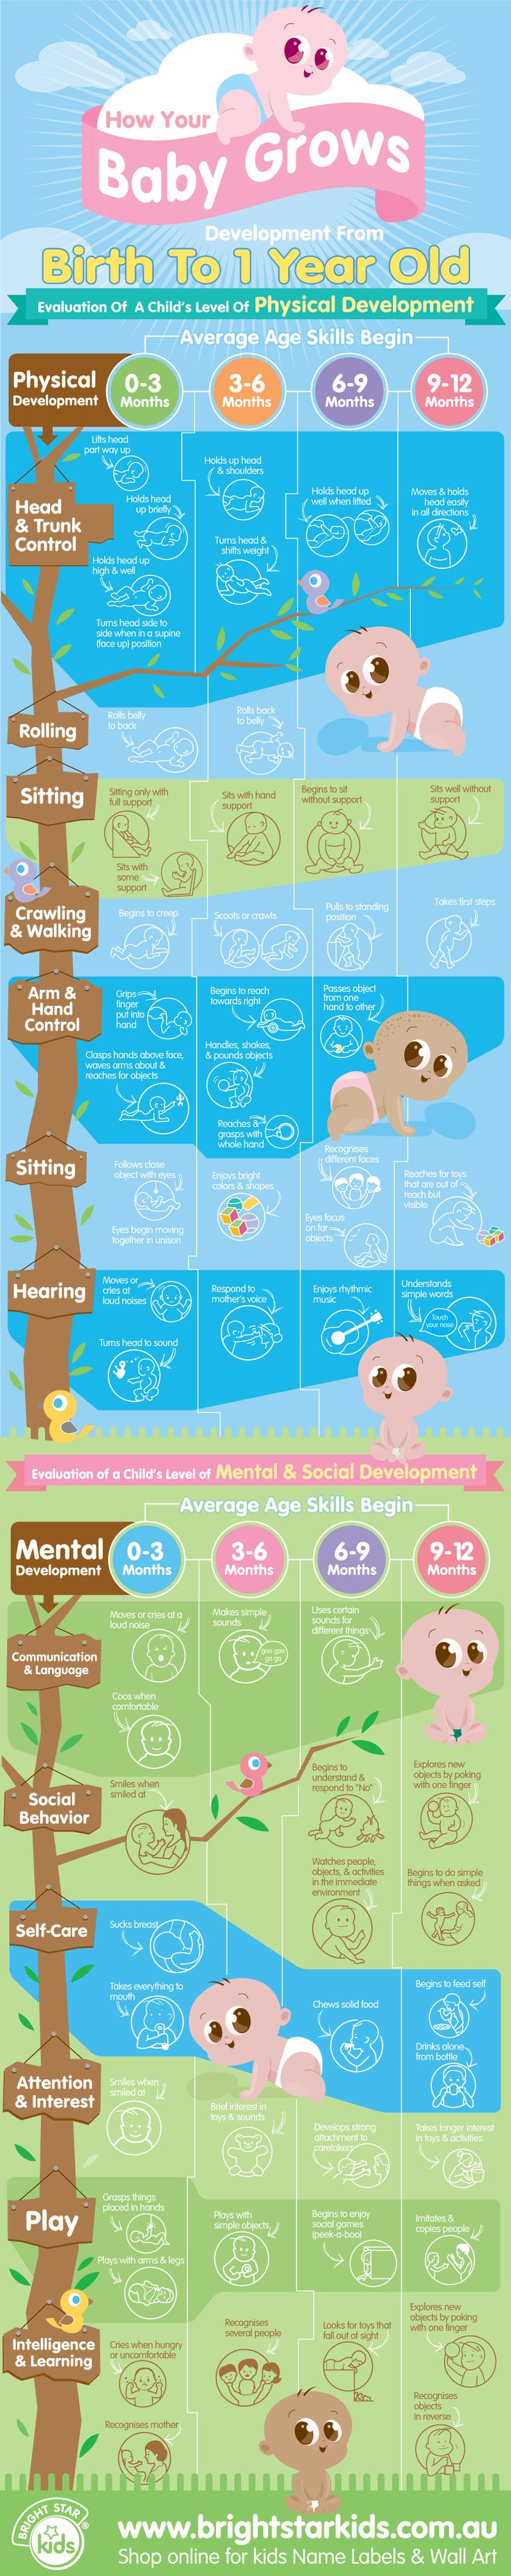 Here is fun and interesting infographic about baby development. See all the changes your baby goes through from 0-12 months old.